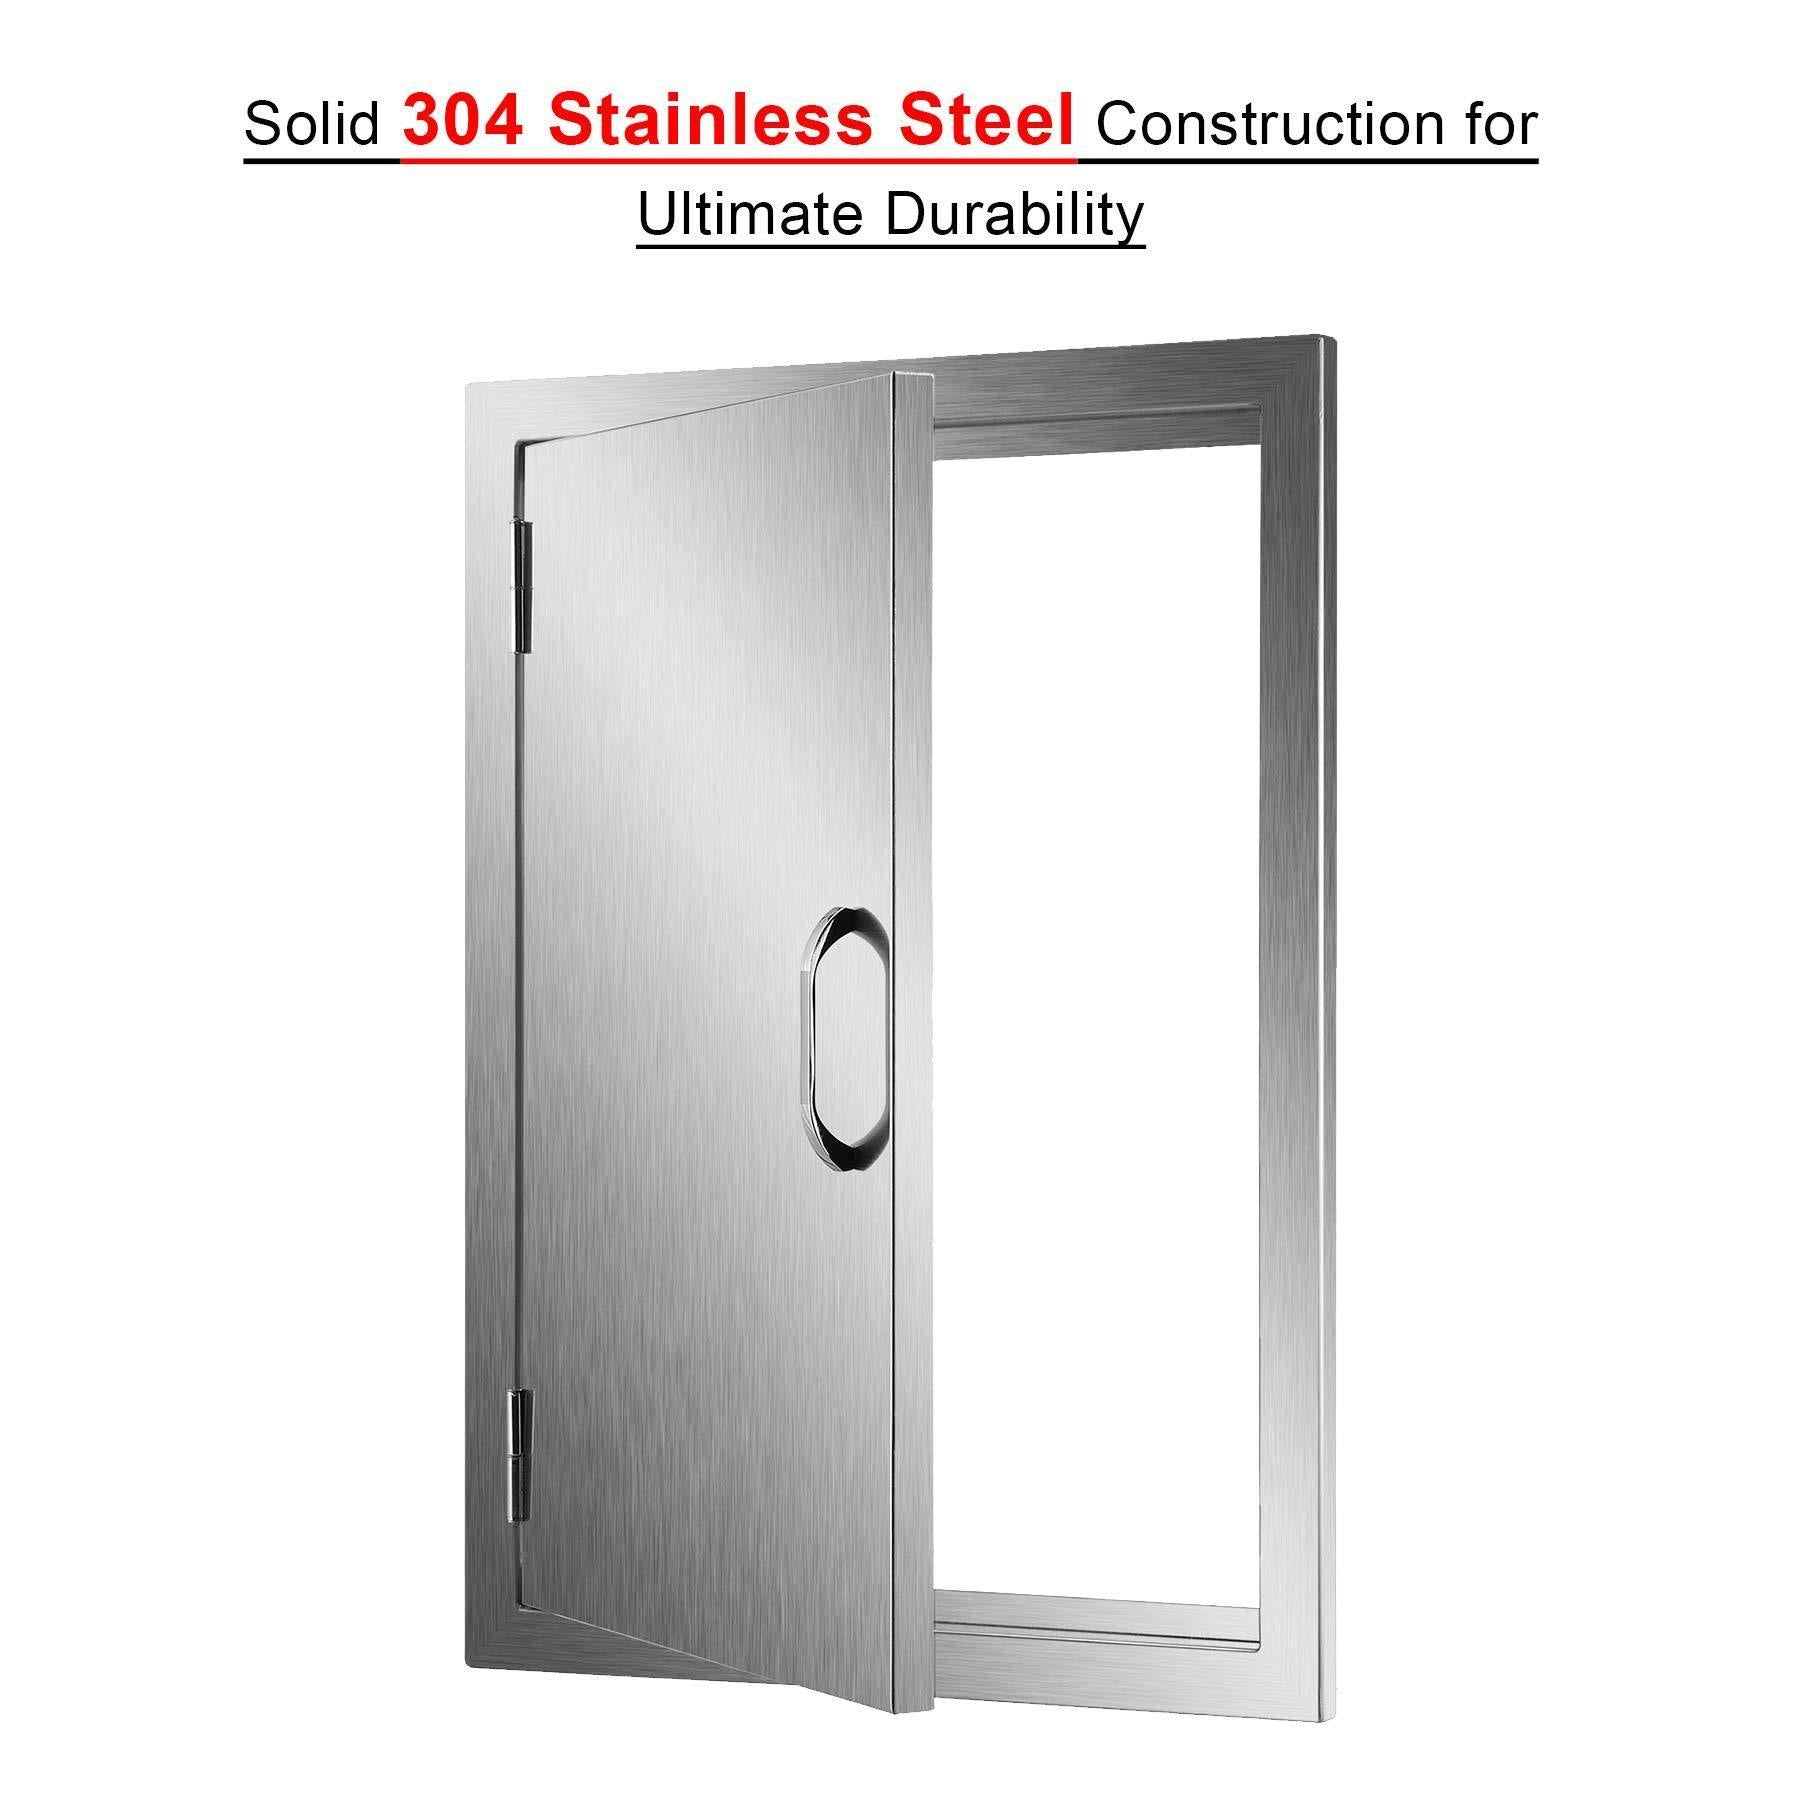 Try co z 304 brushed stainless steel bbq door ss single access doors for outdoor kitchen commercial bbq island grilling station outside cabinet barbeque grill built in